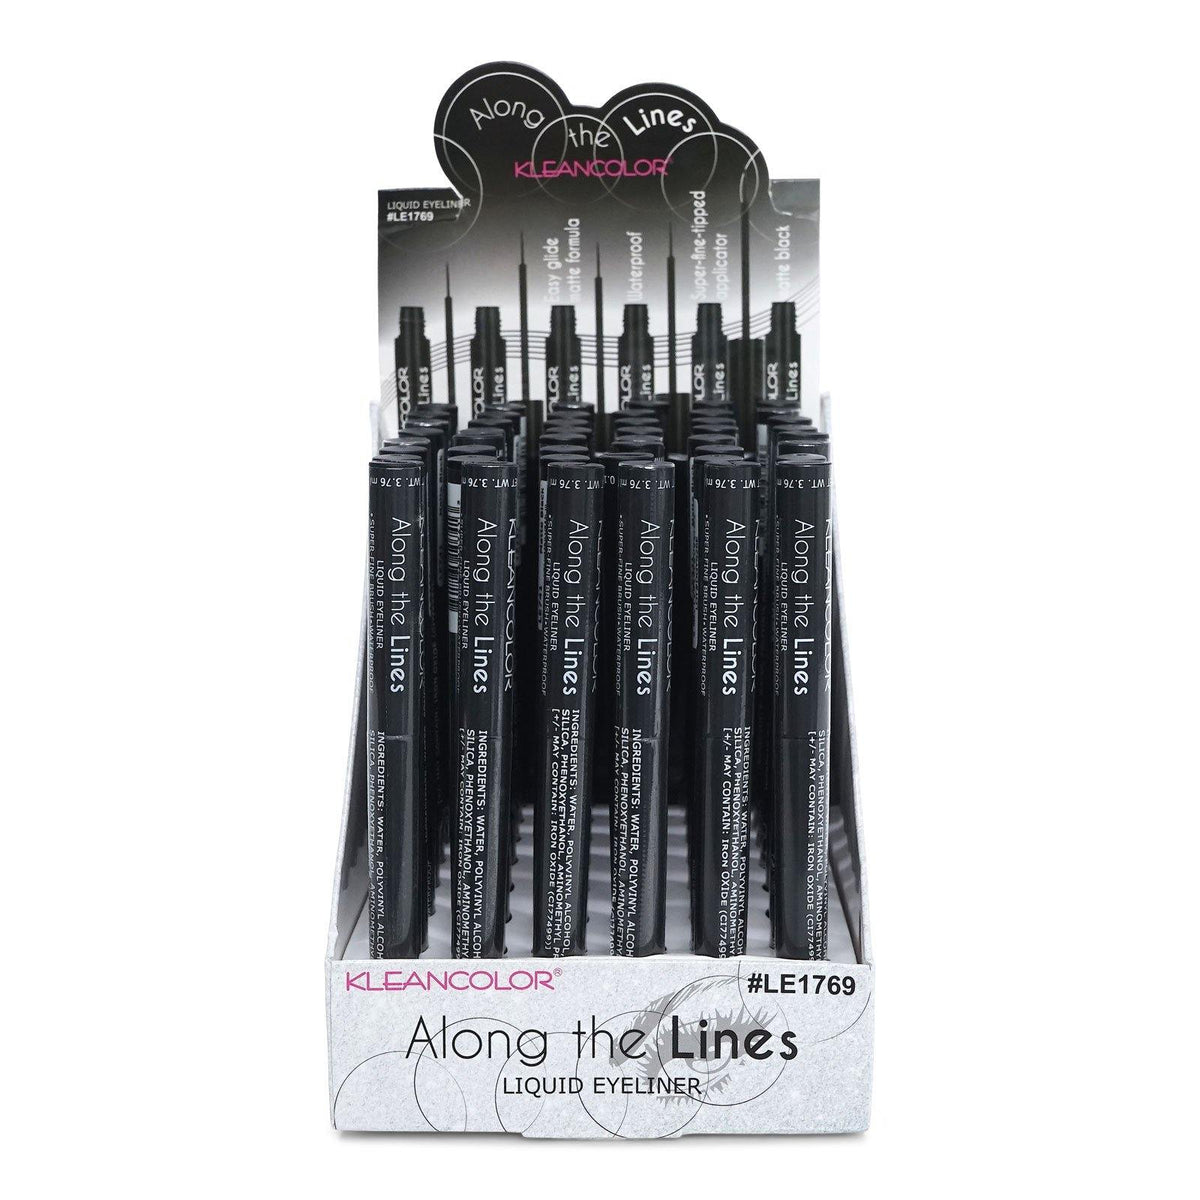 KLEANCOLOR Along the Lines Liquid Eyeliner-MATTE BLACK (LE1769) (48/cs)